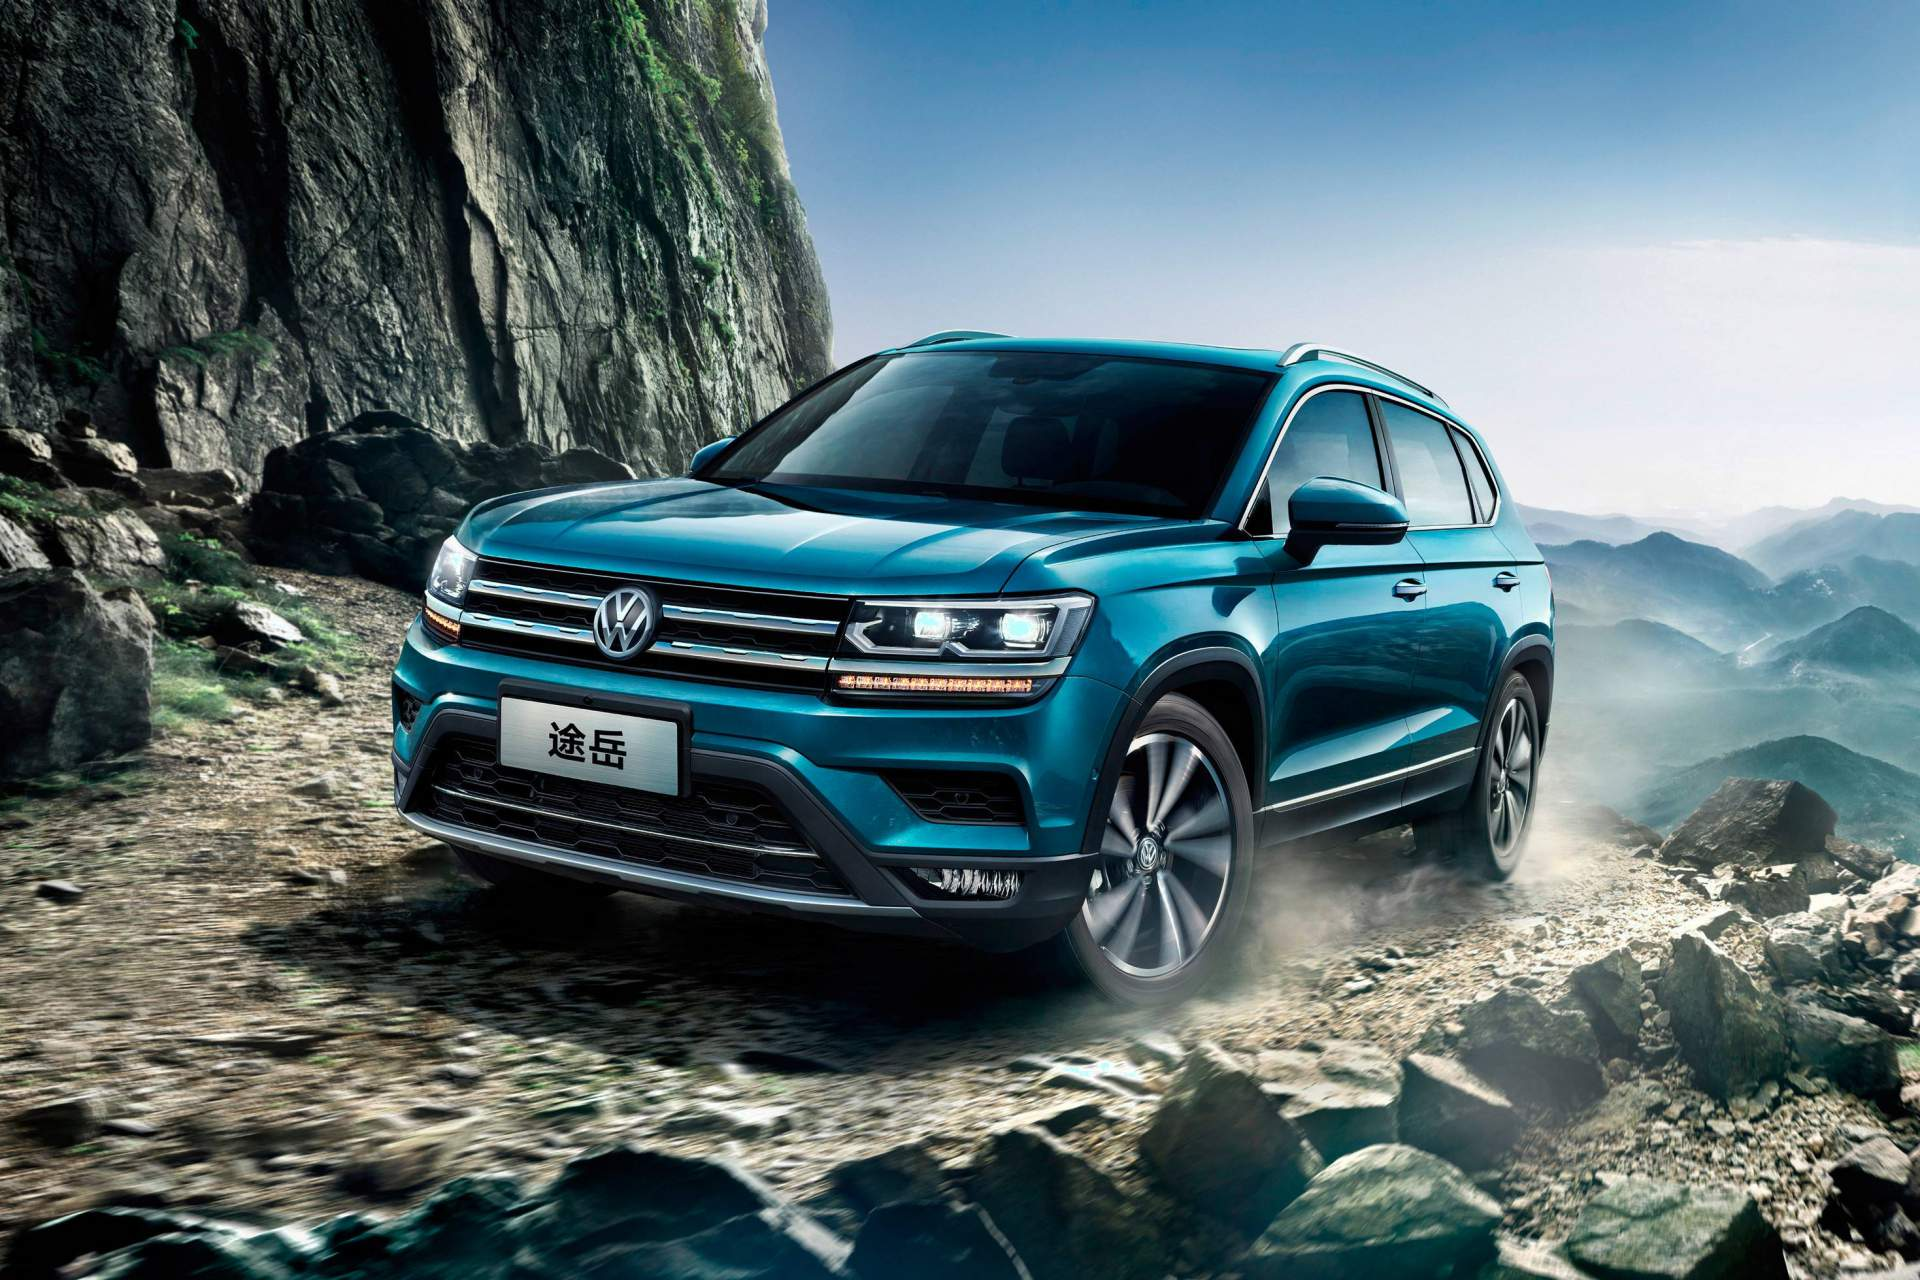 Automotive giant Volkswagen AG is preparing to launch a new compact crossover/SUV in the North and South American markets